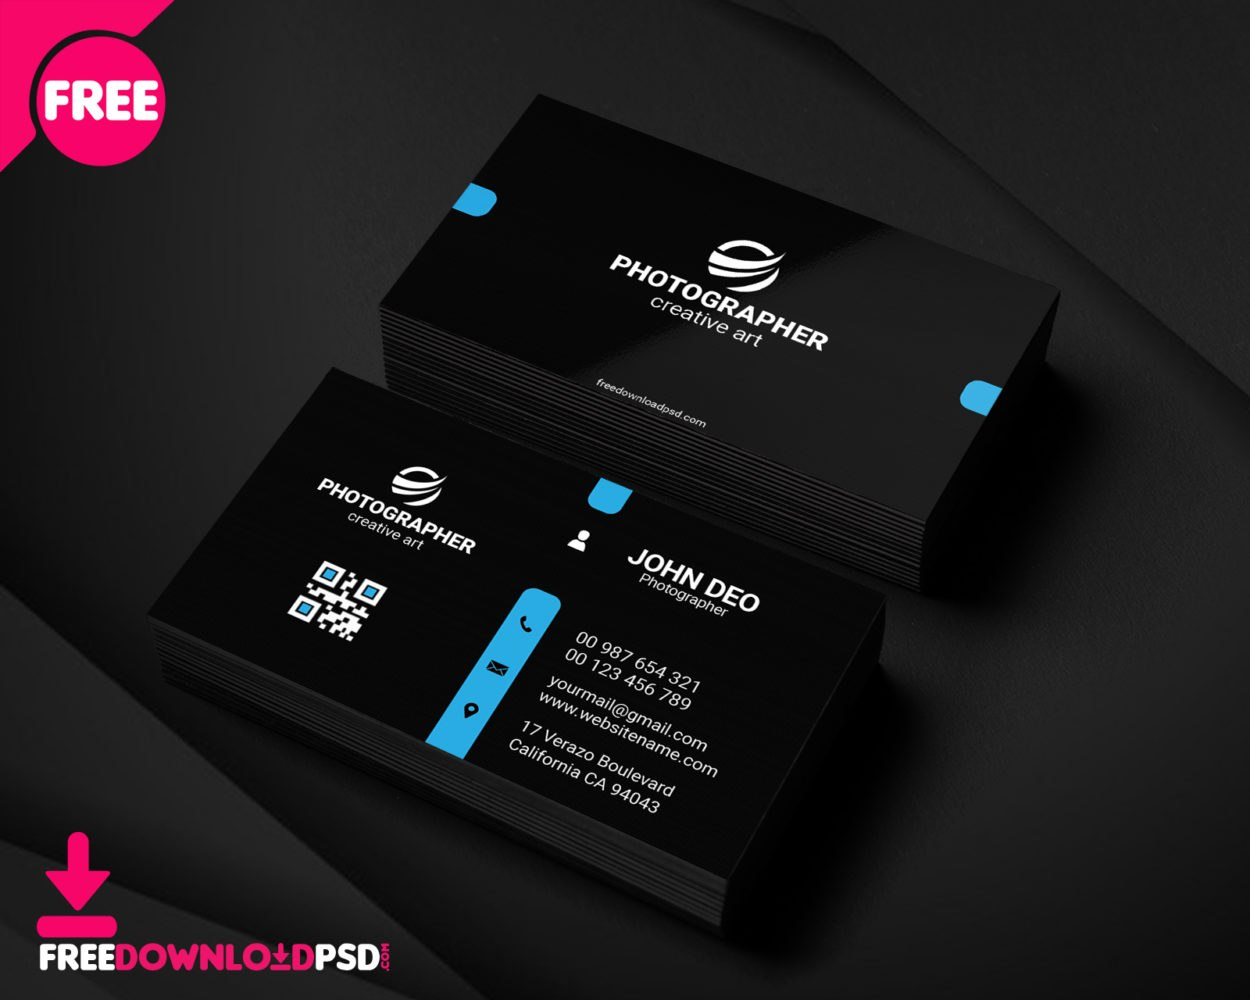 Free Personal Business Card Template  Freedownloadpsd Pertaining To Free Personal Business Card Templates